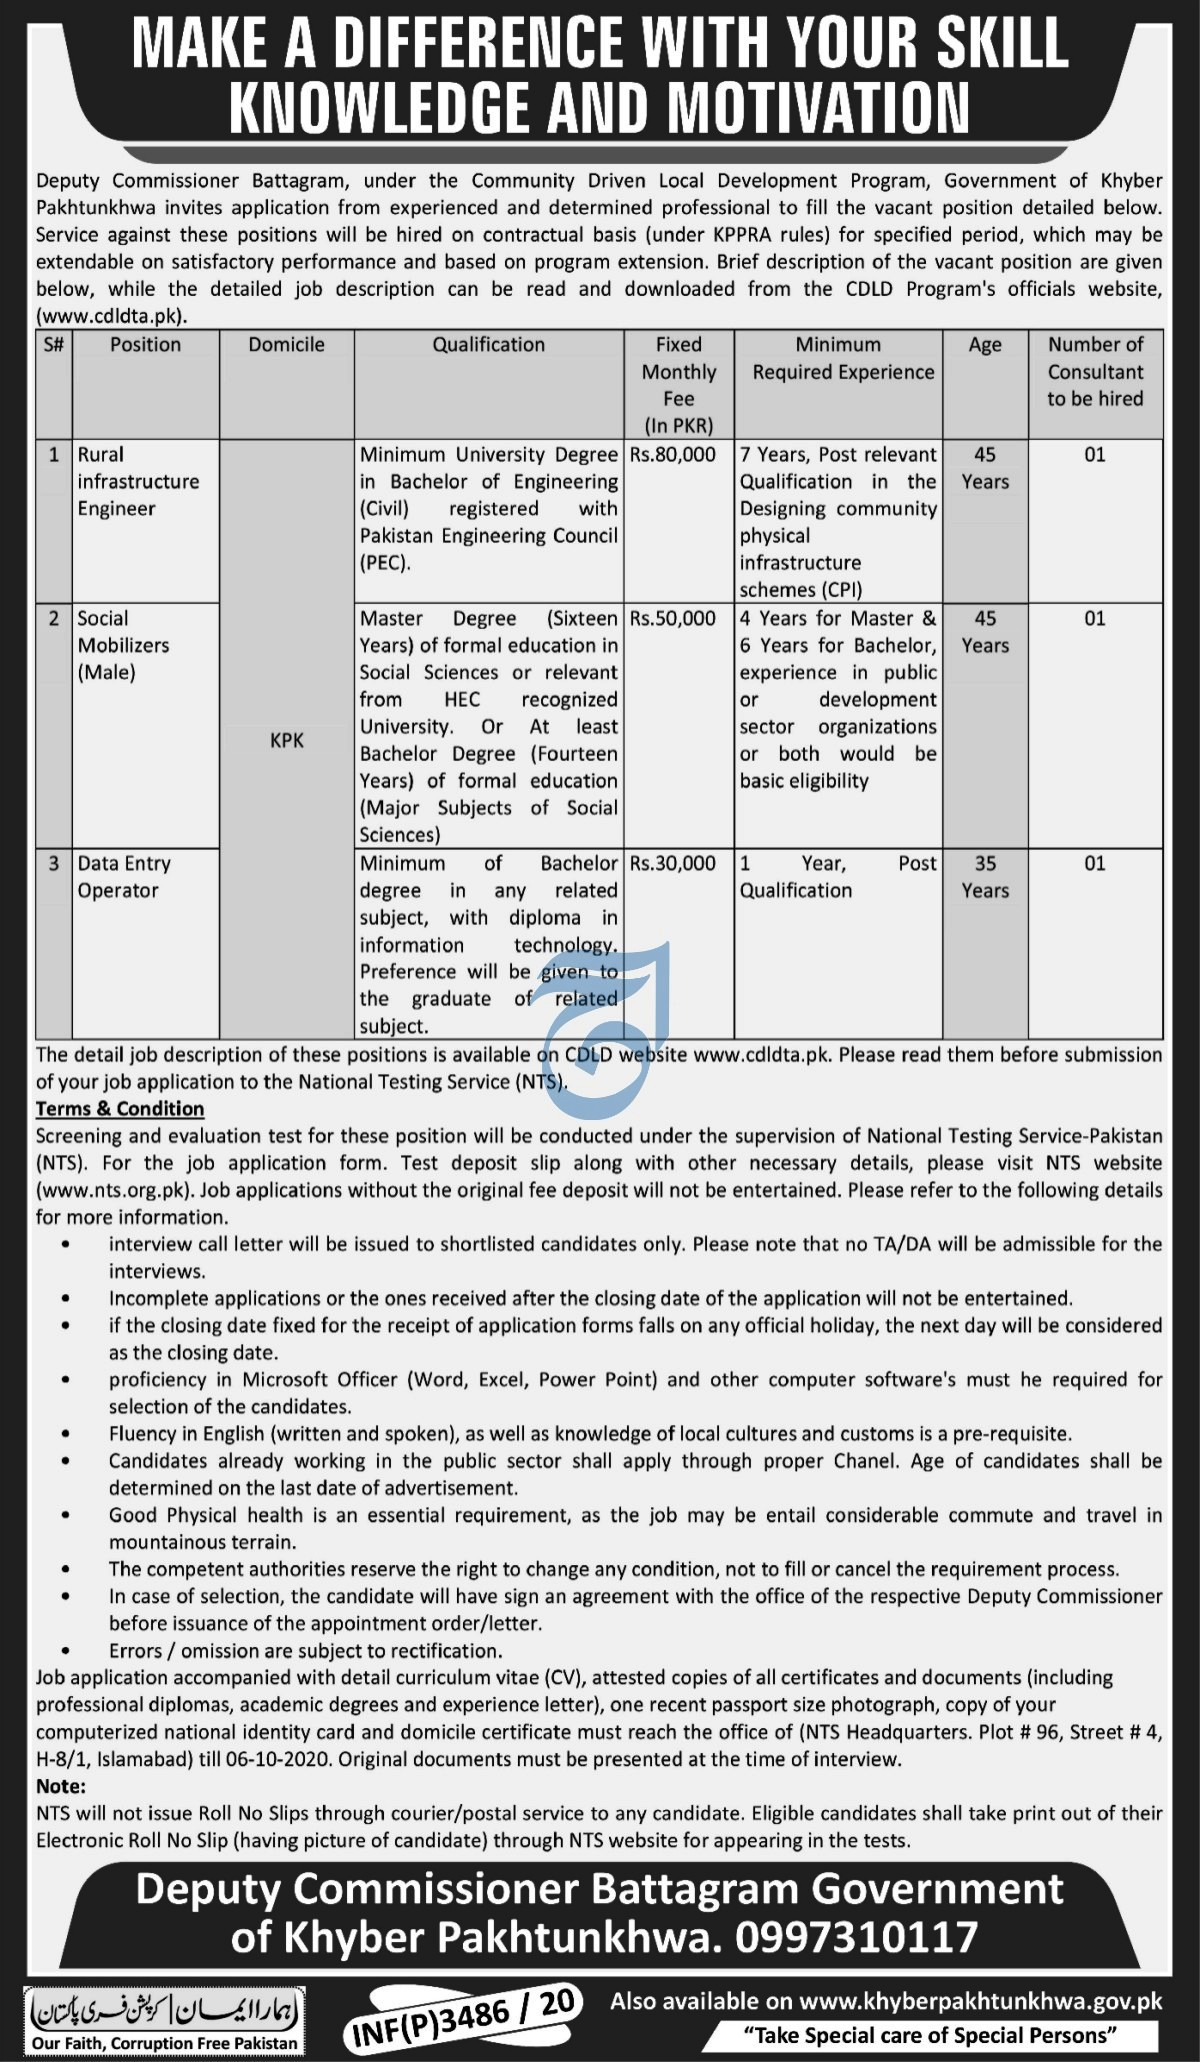 Deputy Commissioner Office DCO Battagram Jobs NTS Roll No Slip